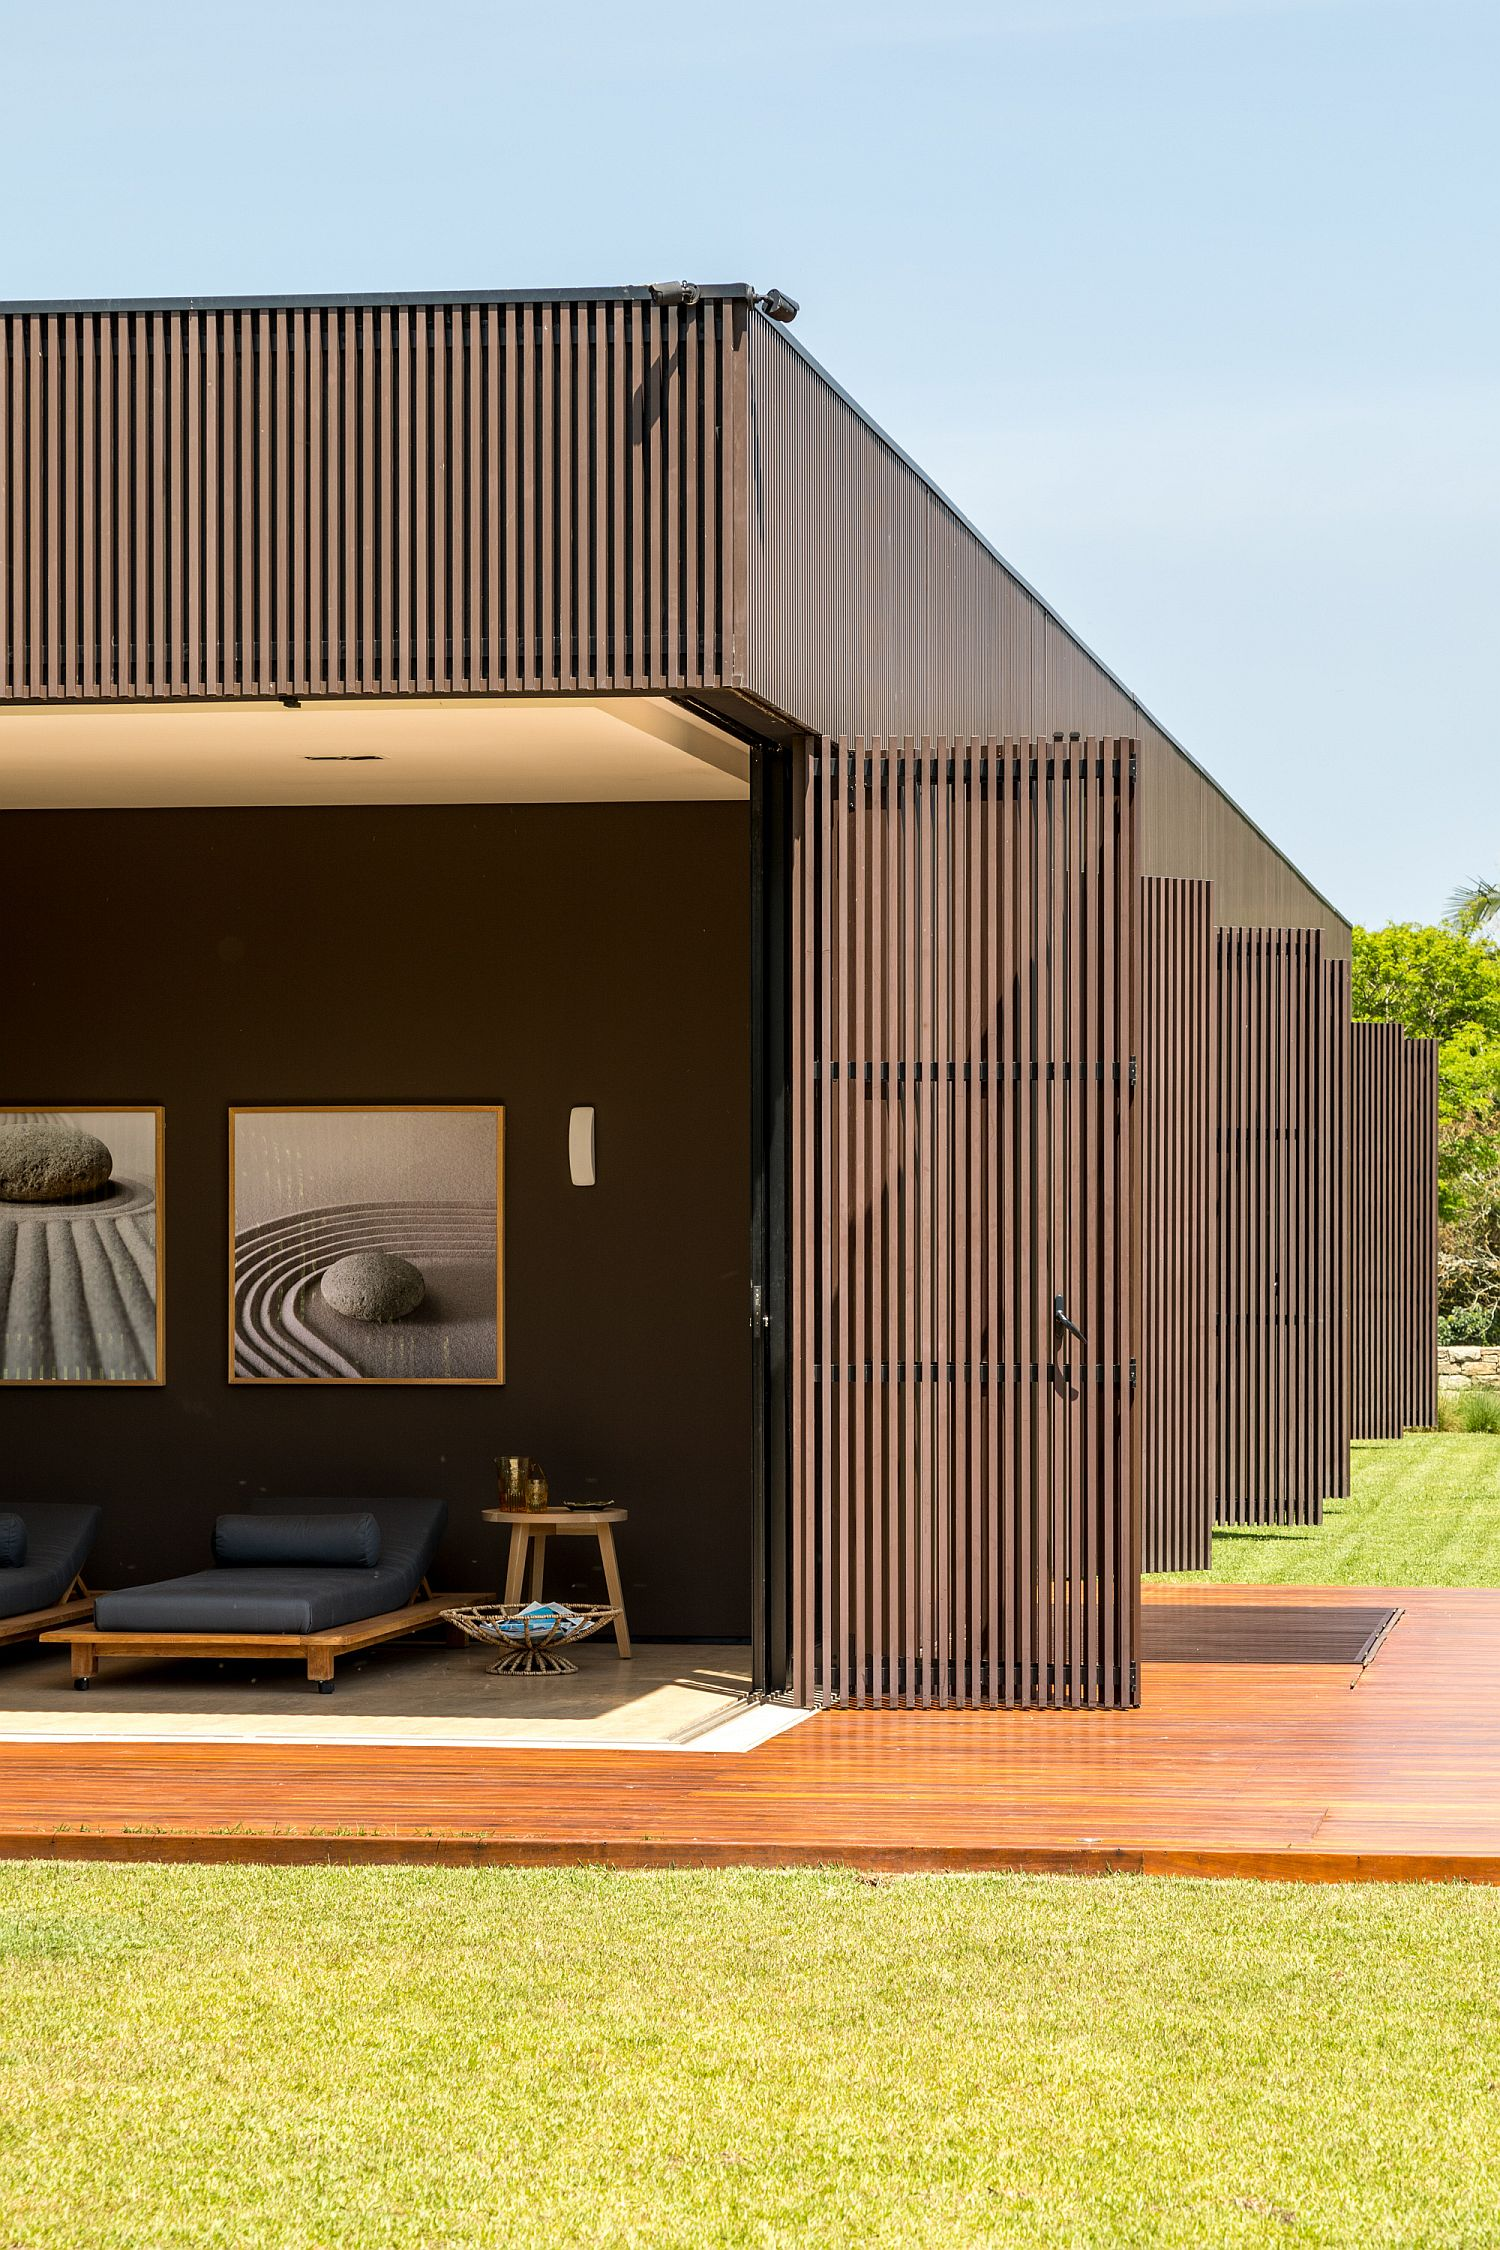 Wooden-shutters-open-up-to-connect-the-interior-with-the-landscape-outside